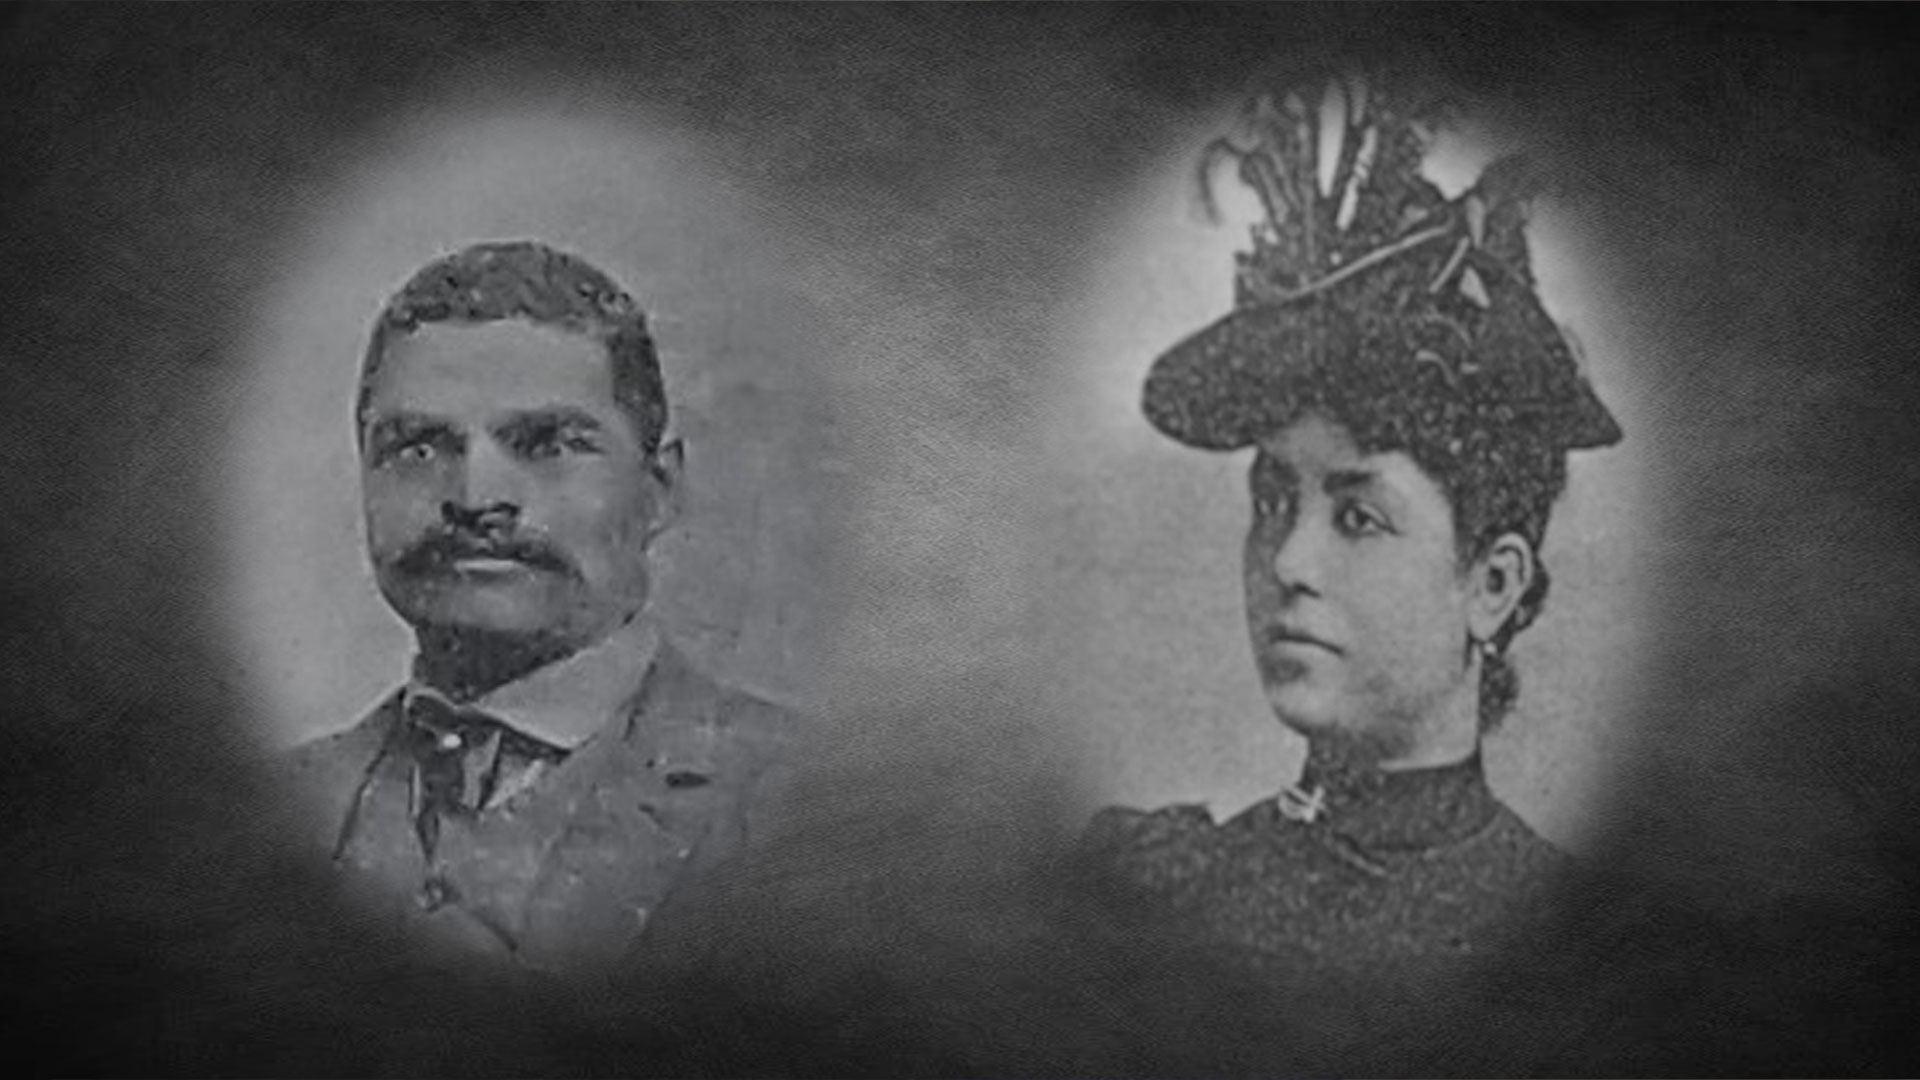 AZILL william curly annie neal hero